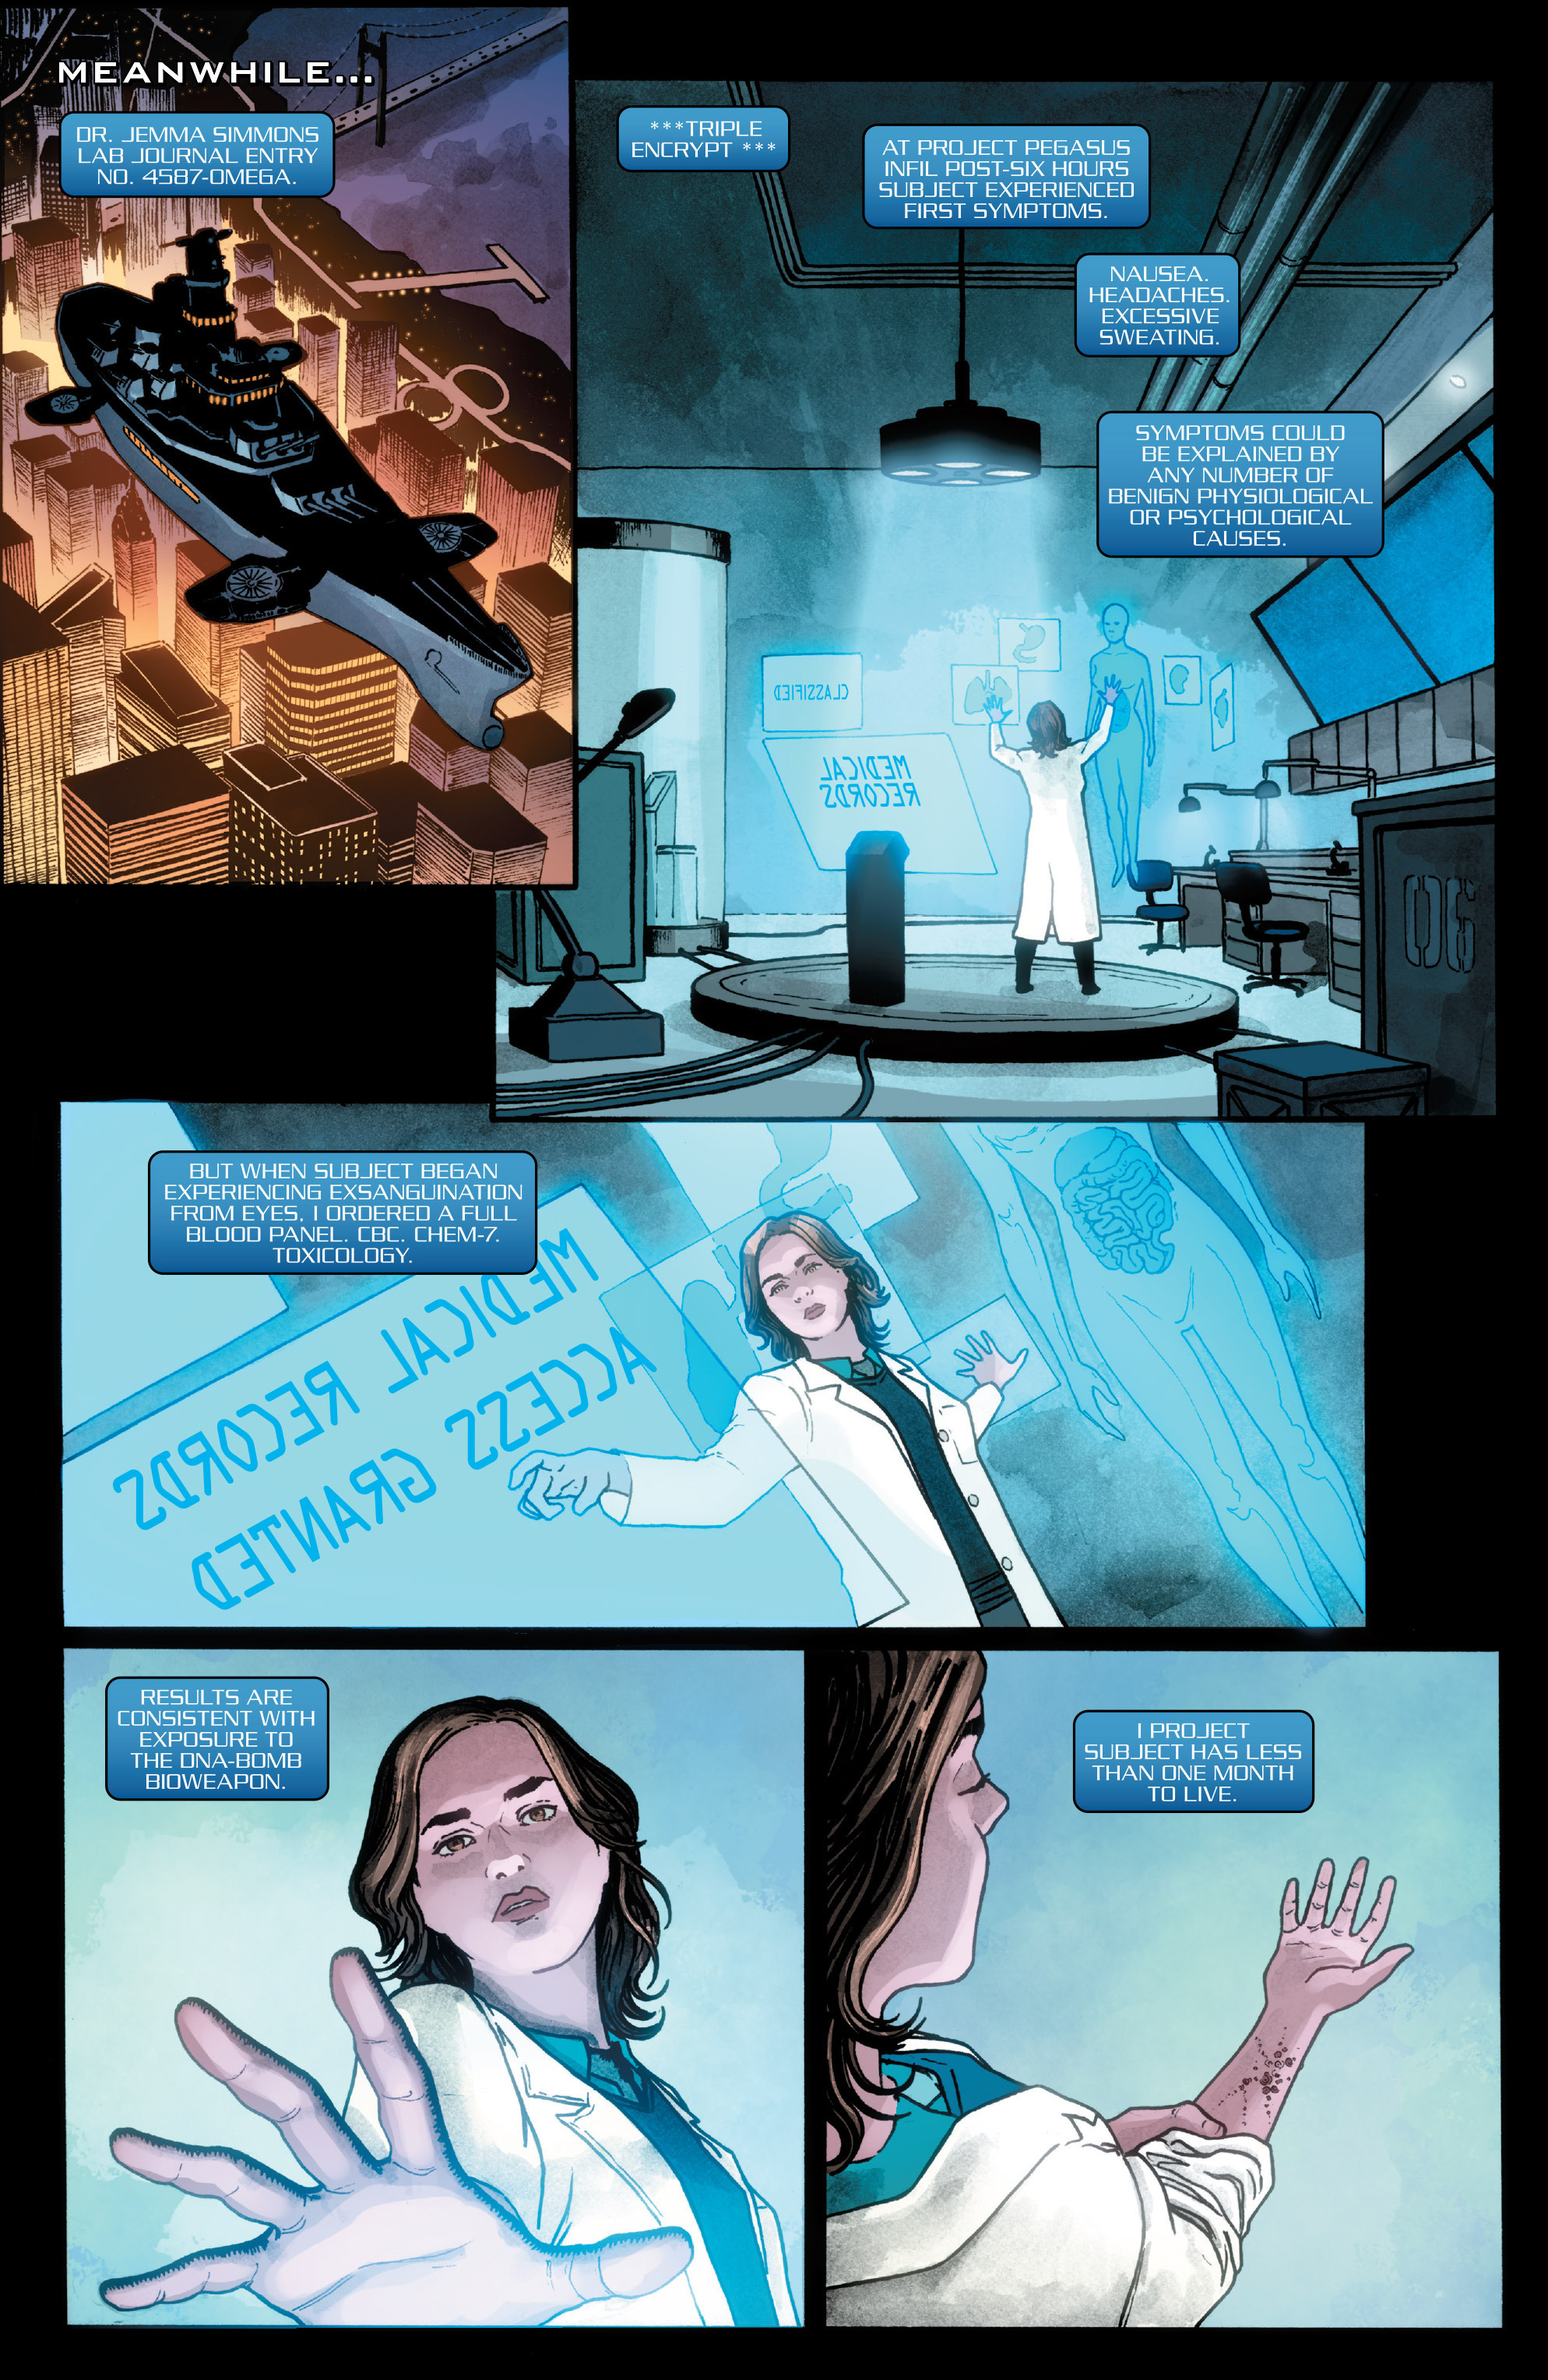 Read online Agents of S.H.I.E.L.D. comic -  Issue #1 - 18